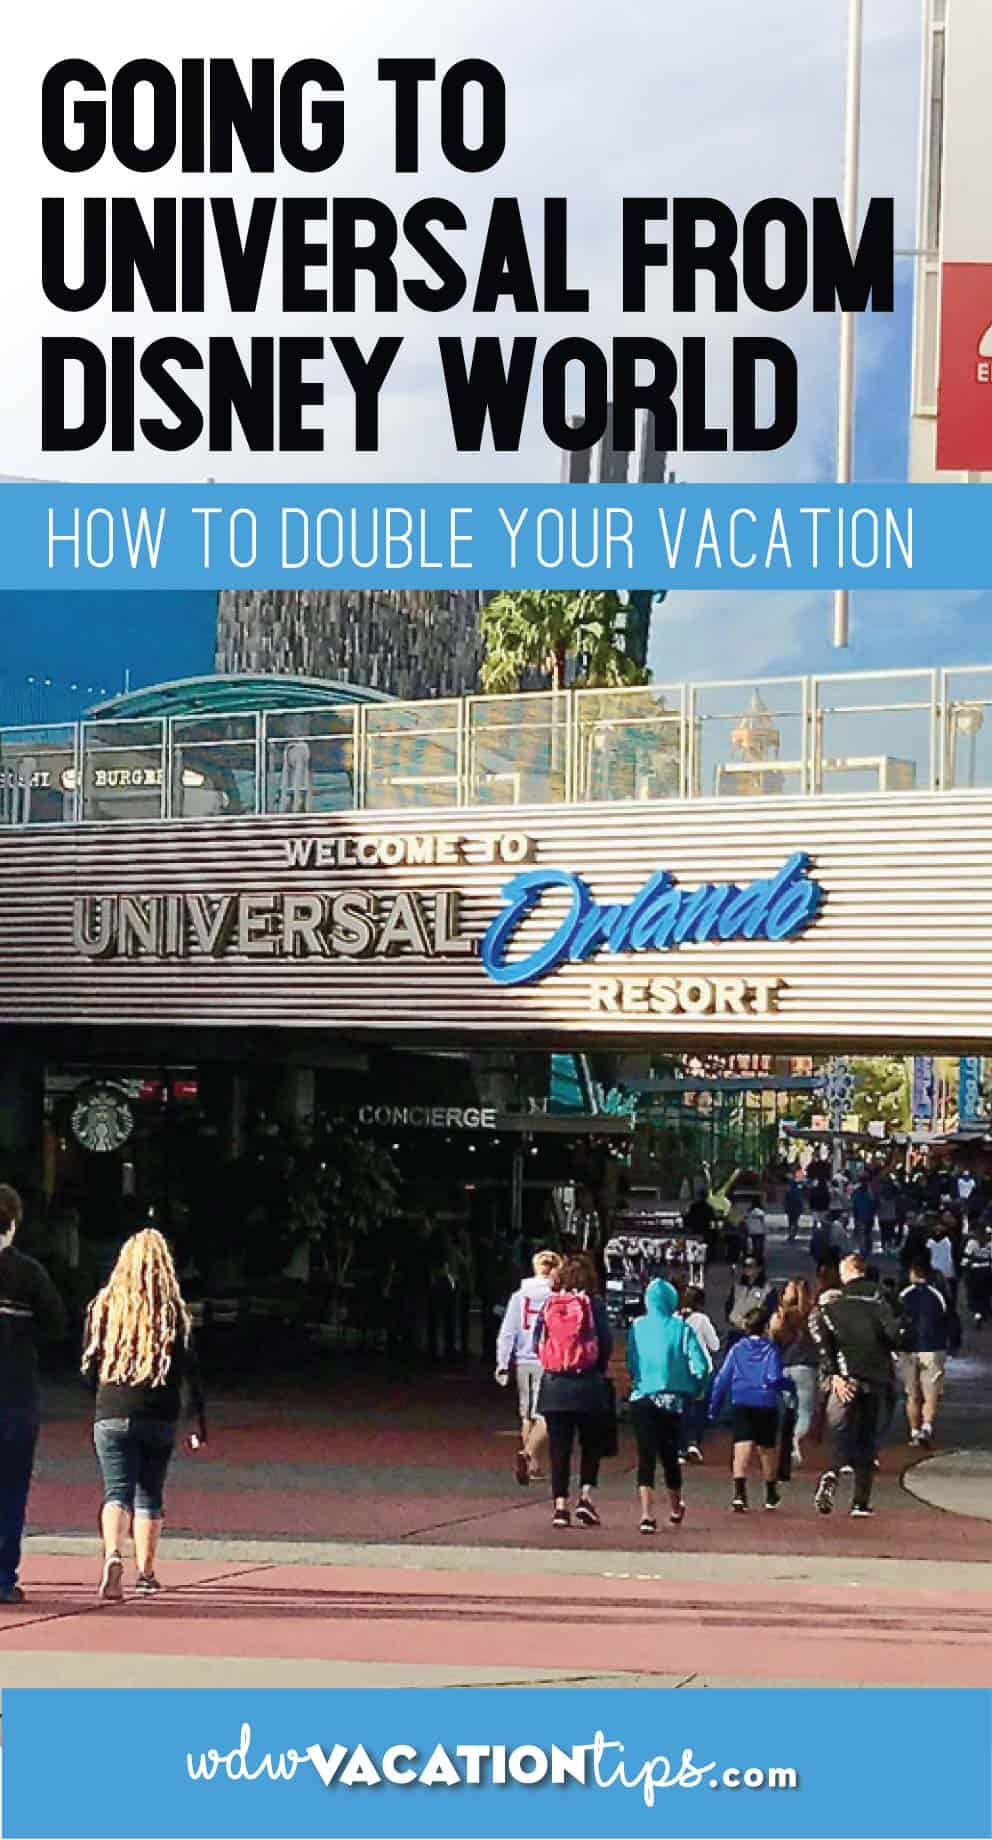 Directions from Disney World to Universal